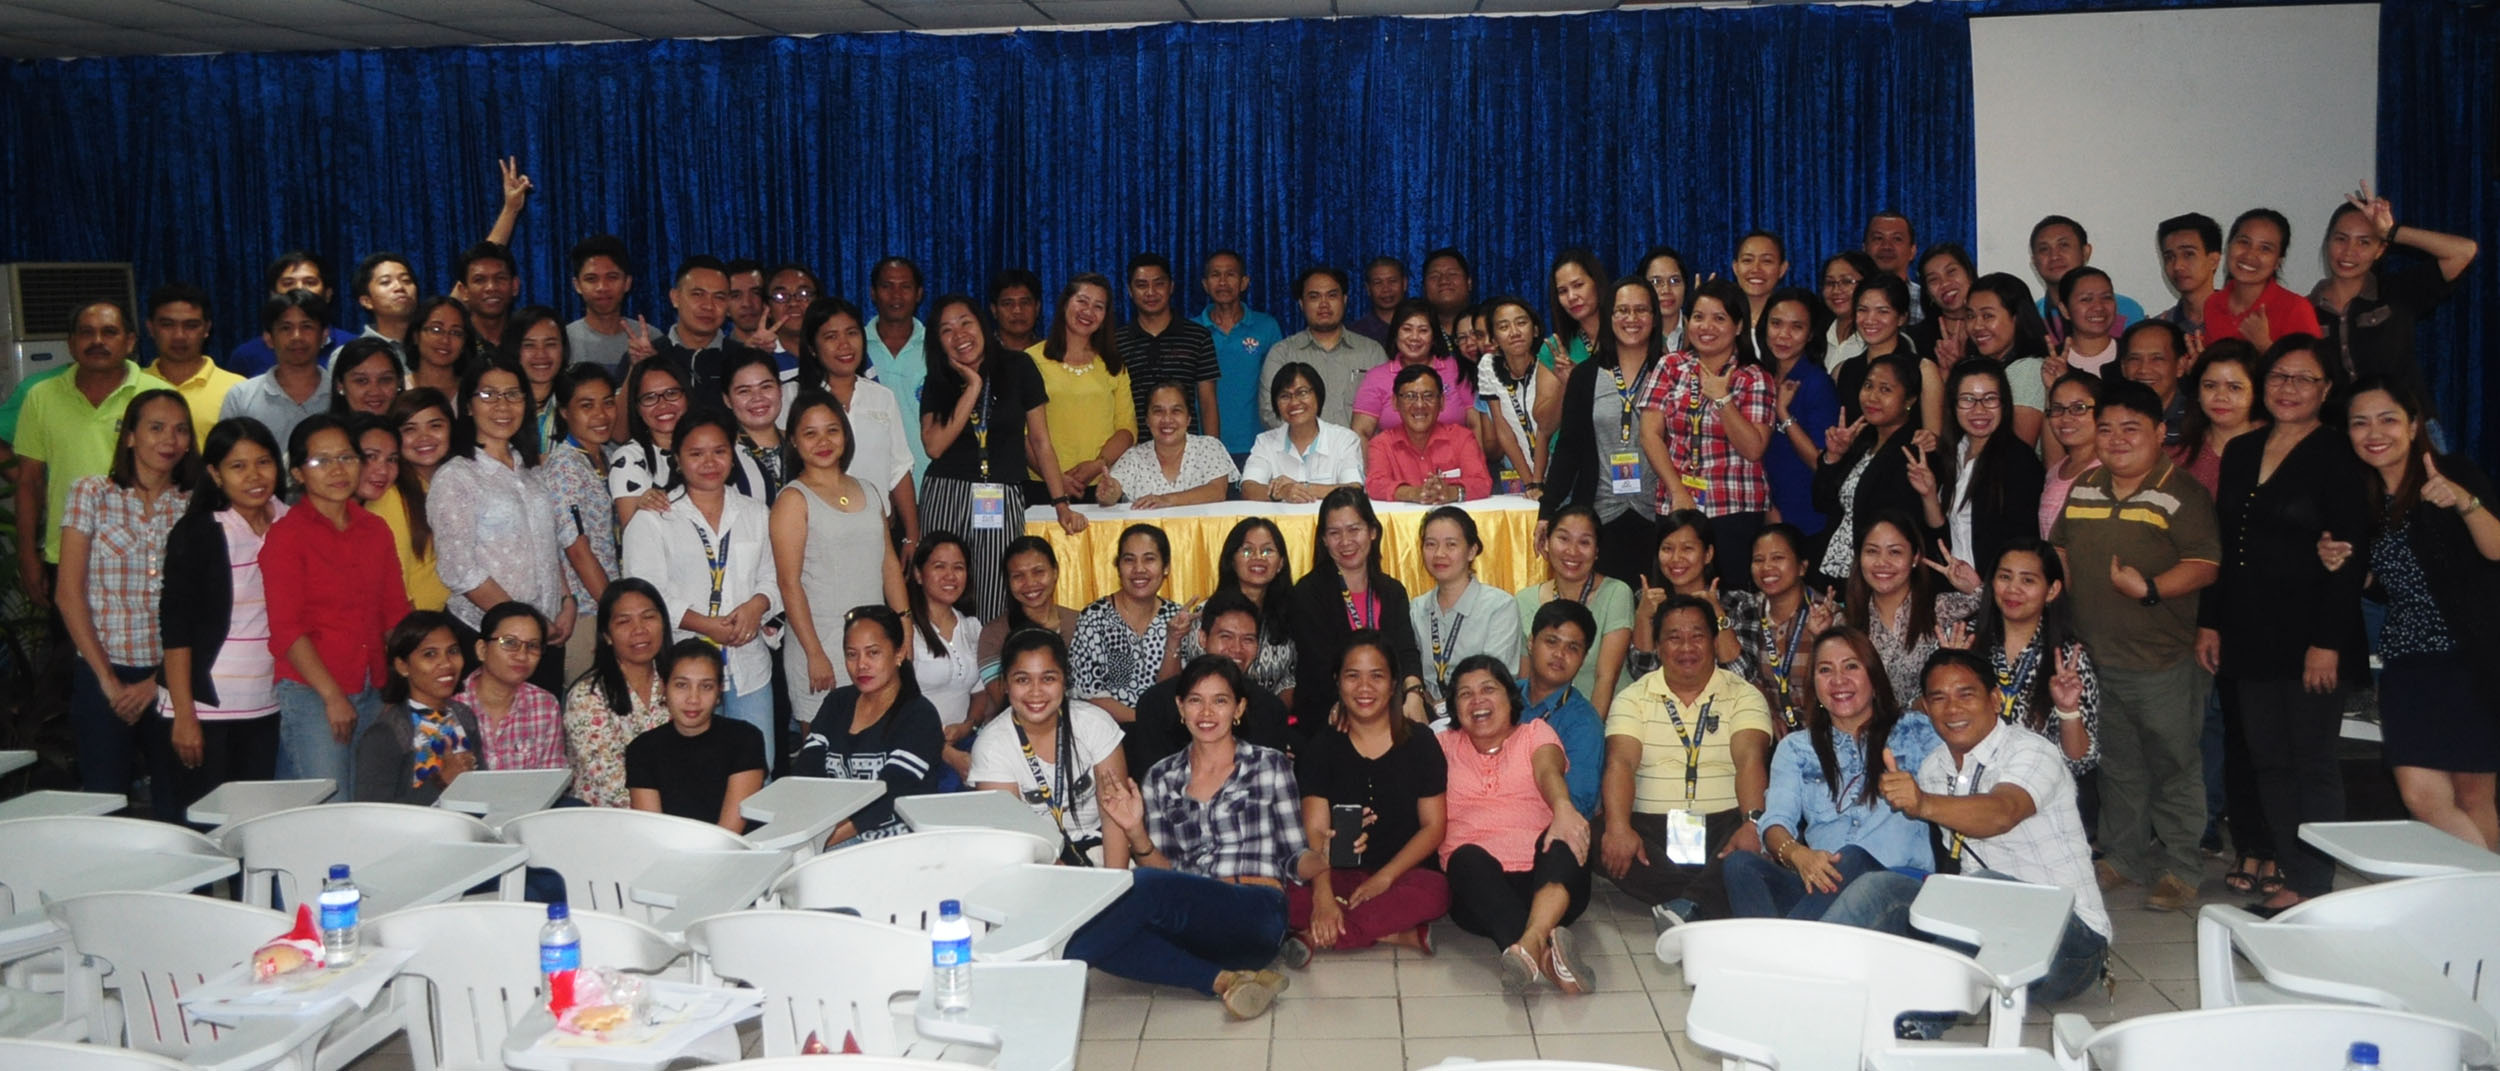 the participants pose for the camera after completing the two-day seminar workshop.